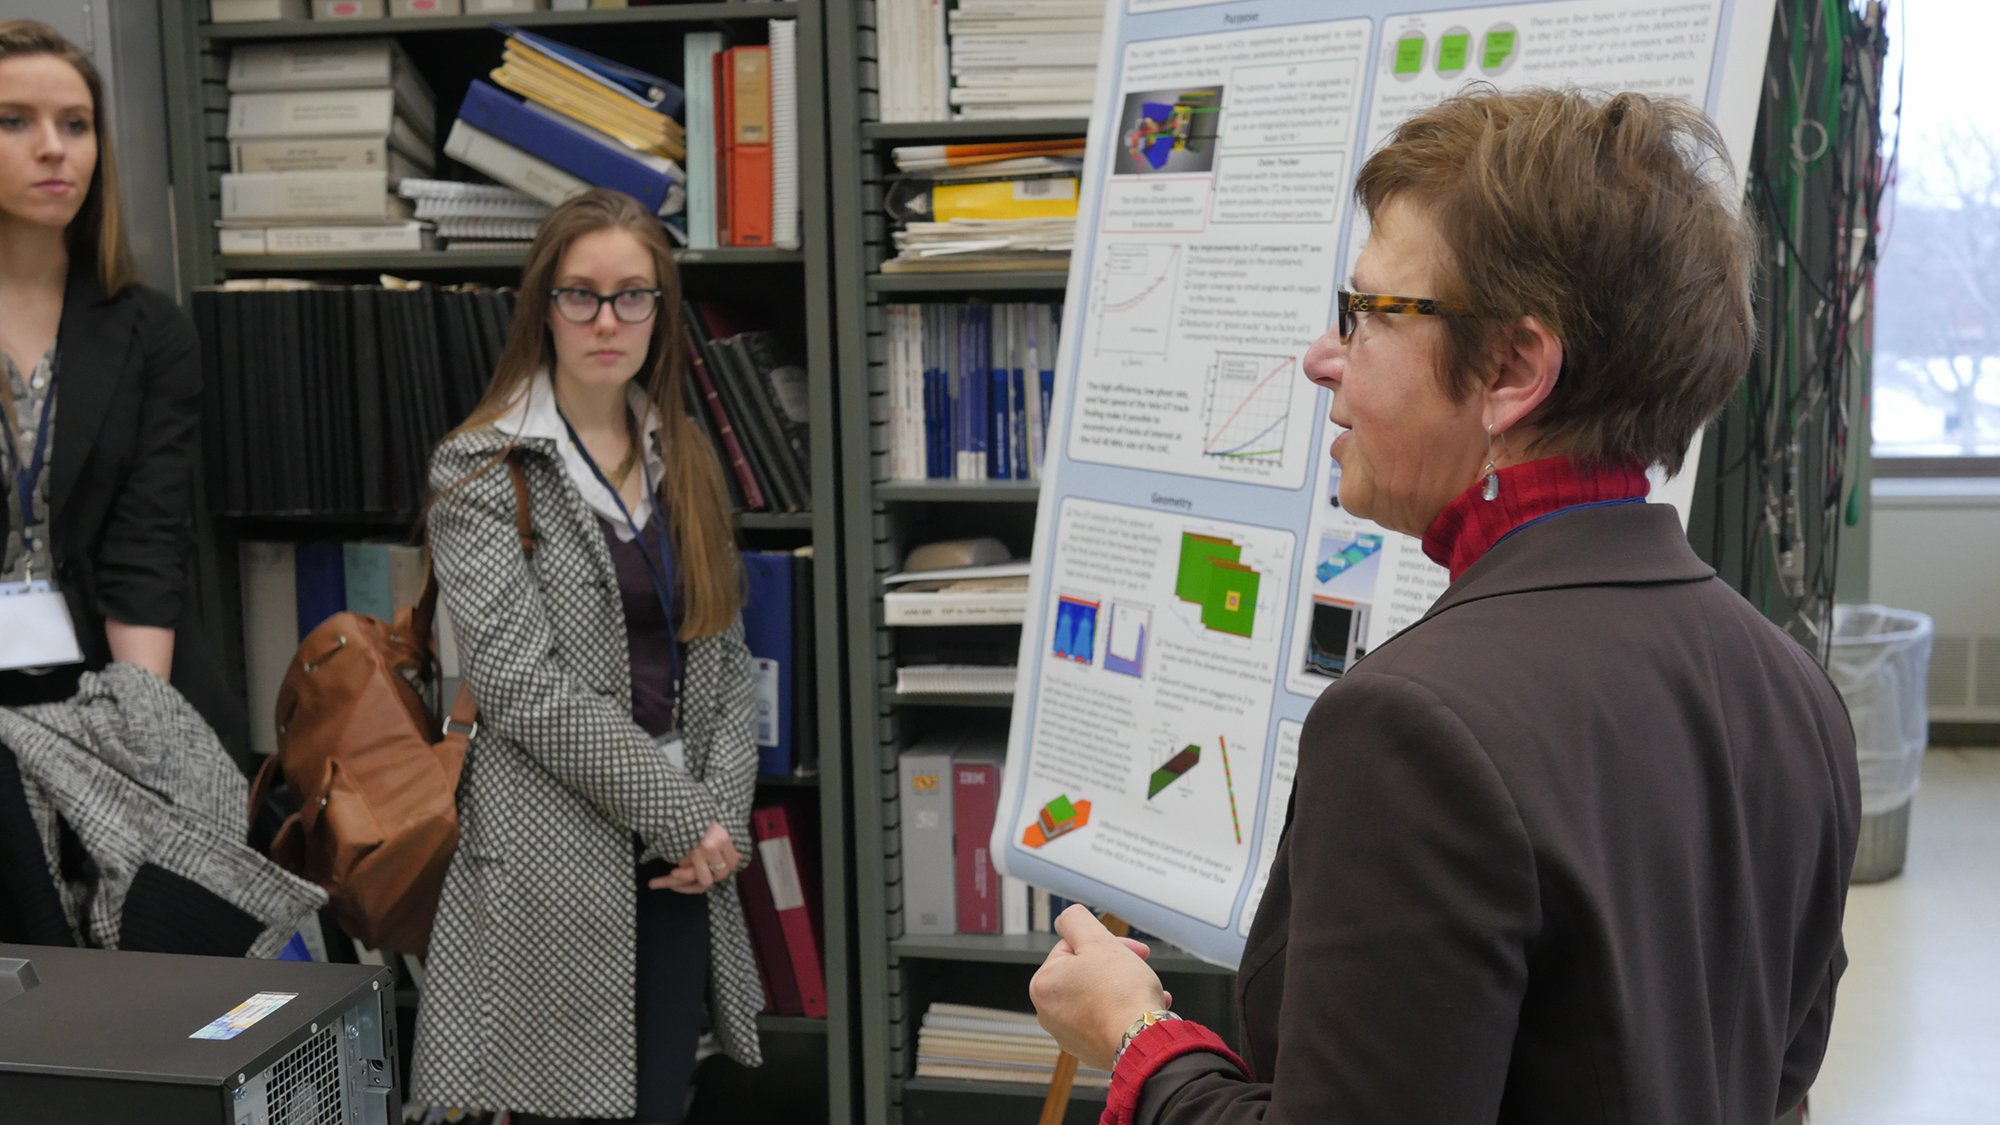 faculty member showing a research poster to two female students